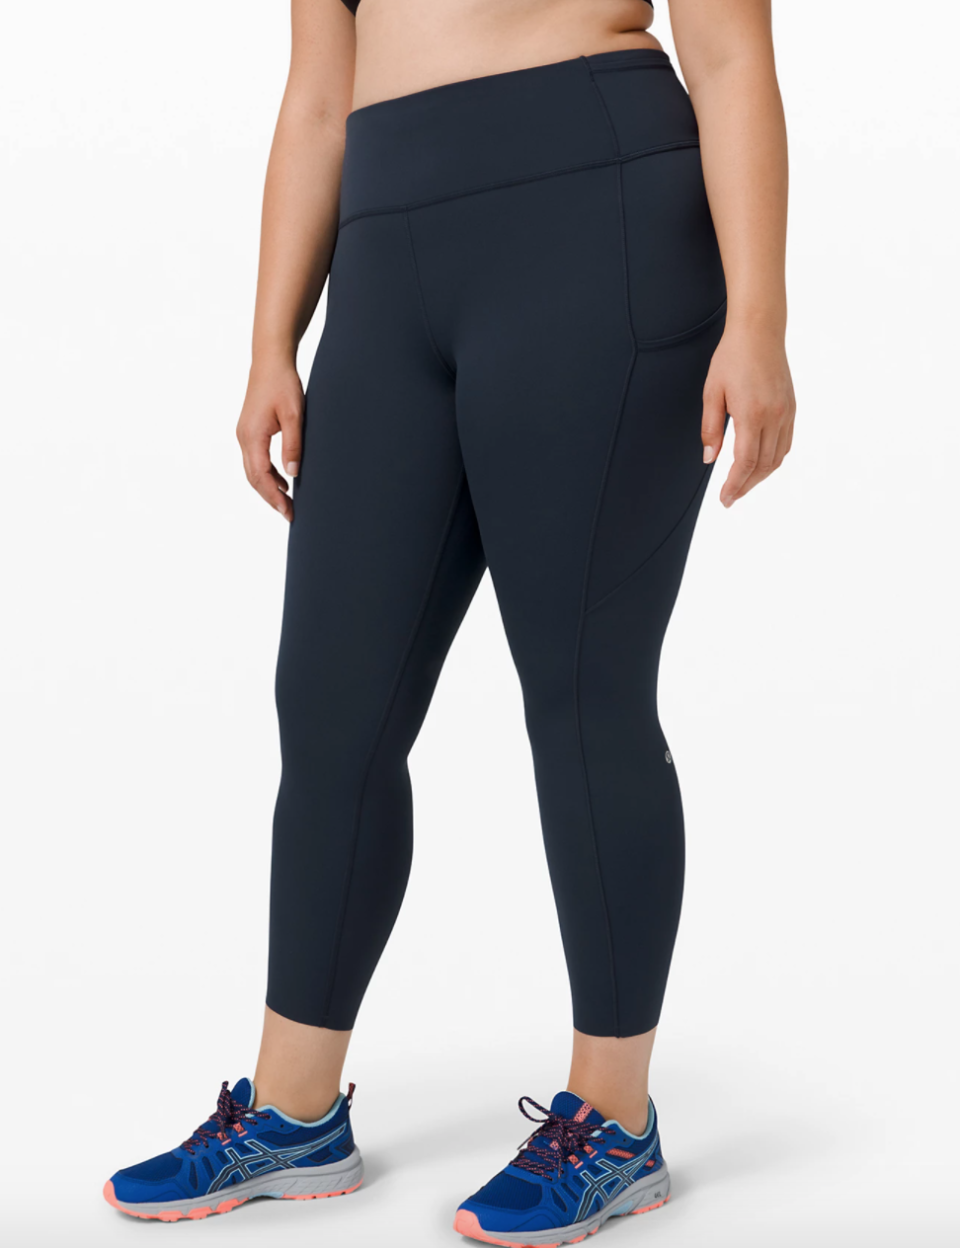 "Fast and Free Tight II 25"" Non-Reflective Nulux. Model wearing size 16. Image via Lululemon."